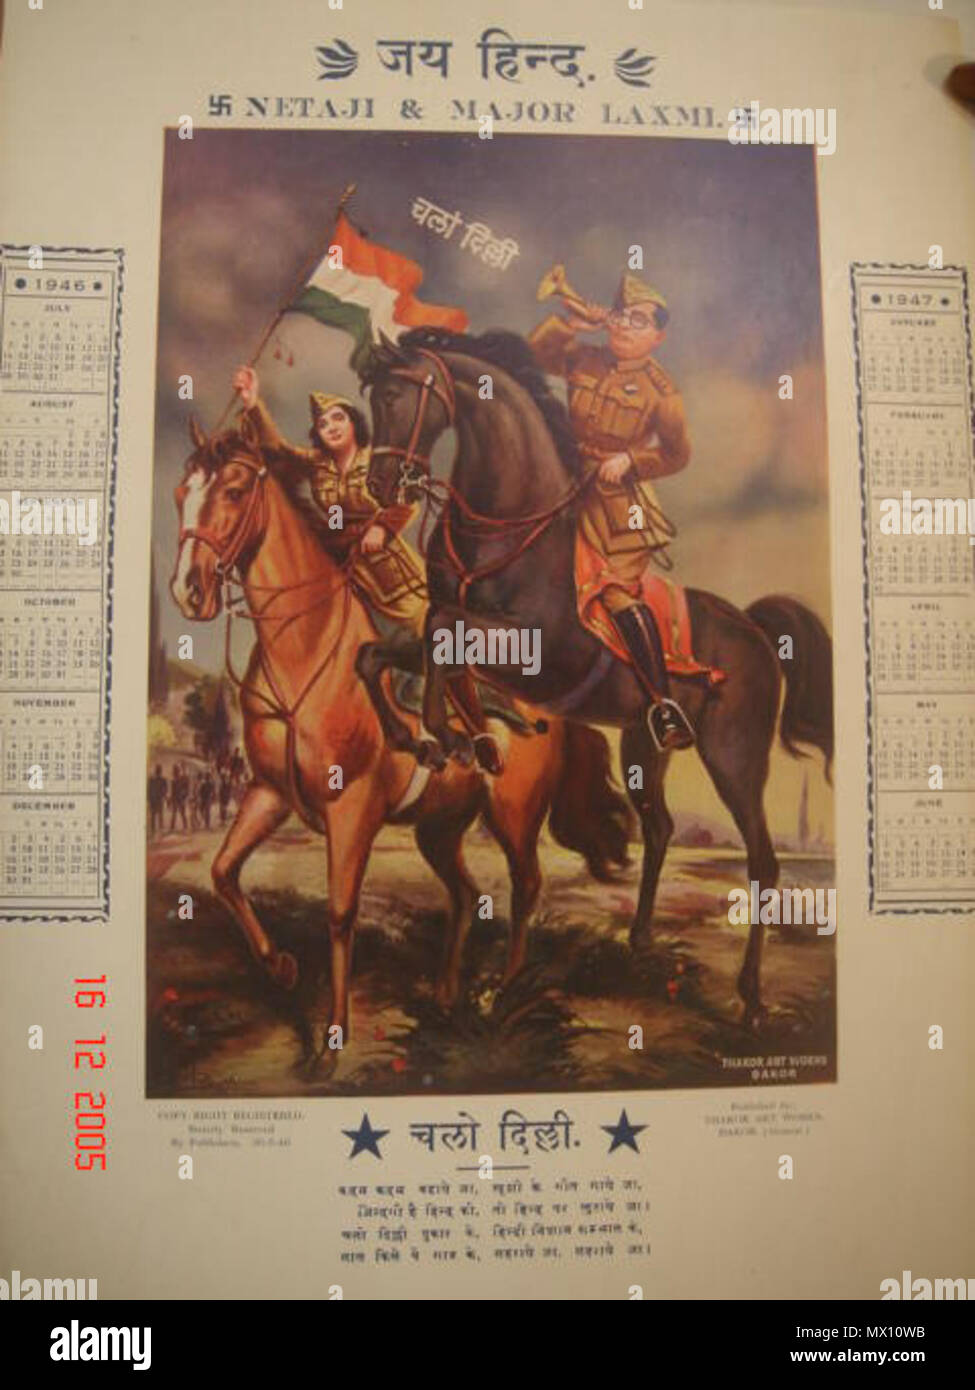 . English: Calendar art memorializing Netaji, 1946-47: he is given a sword by Durga, and then attacks: 'Chalo Dilli!' (On to Delhi!) Source: ebay, Dec. 2006 . between 1946 and 1947. Unknown 122 Chalo Dilli - Stock Image